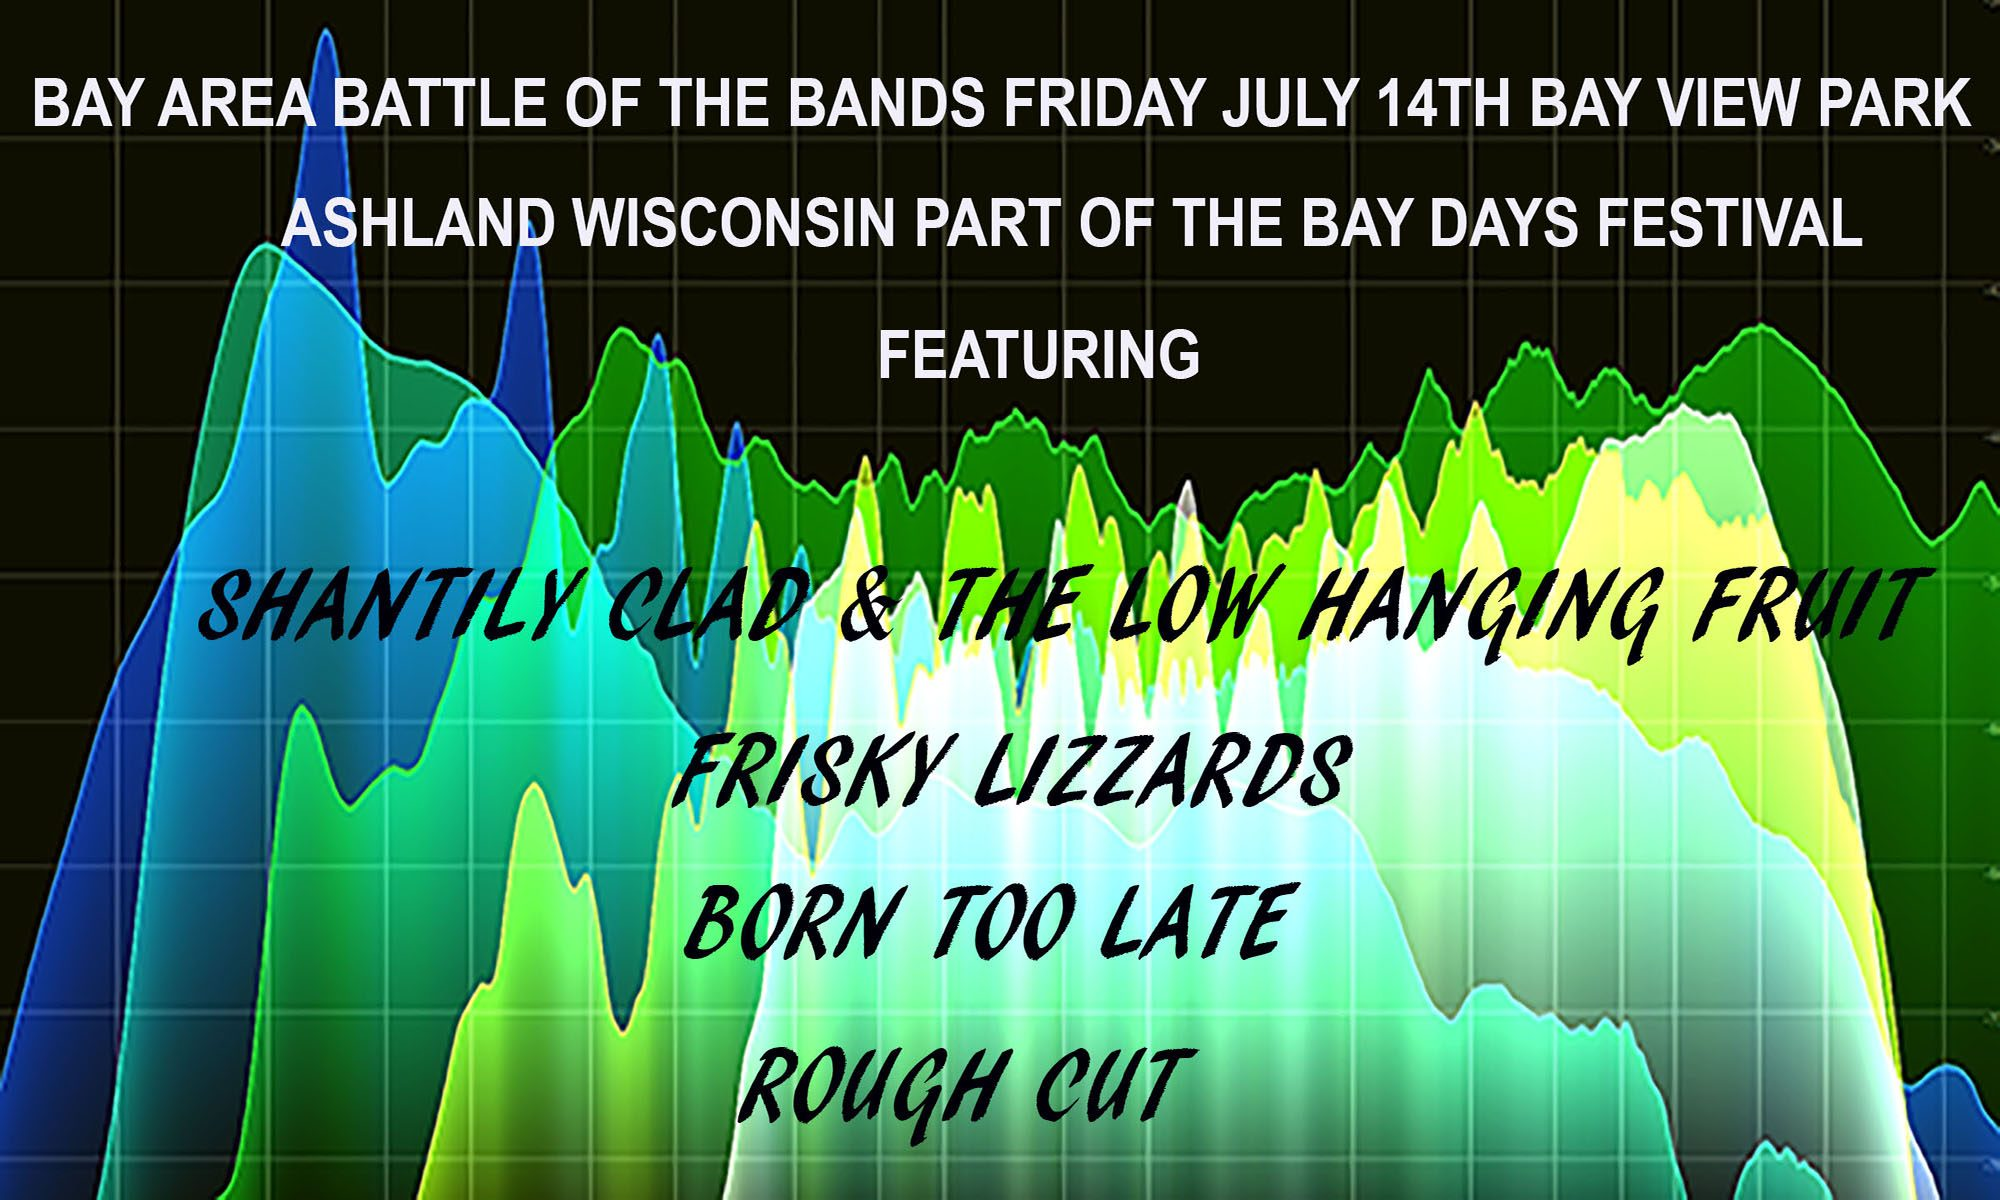 Bay Area Battle of the Bands